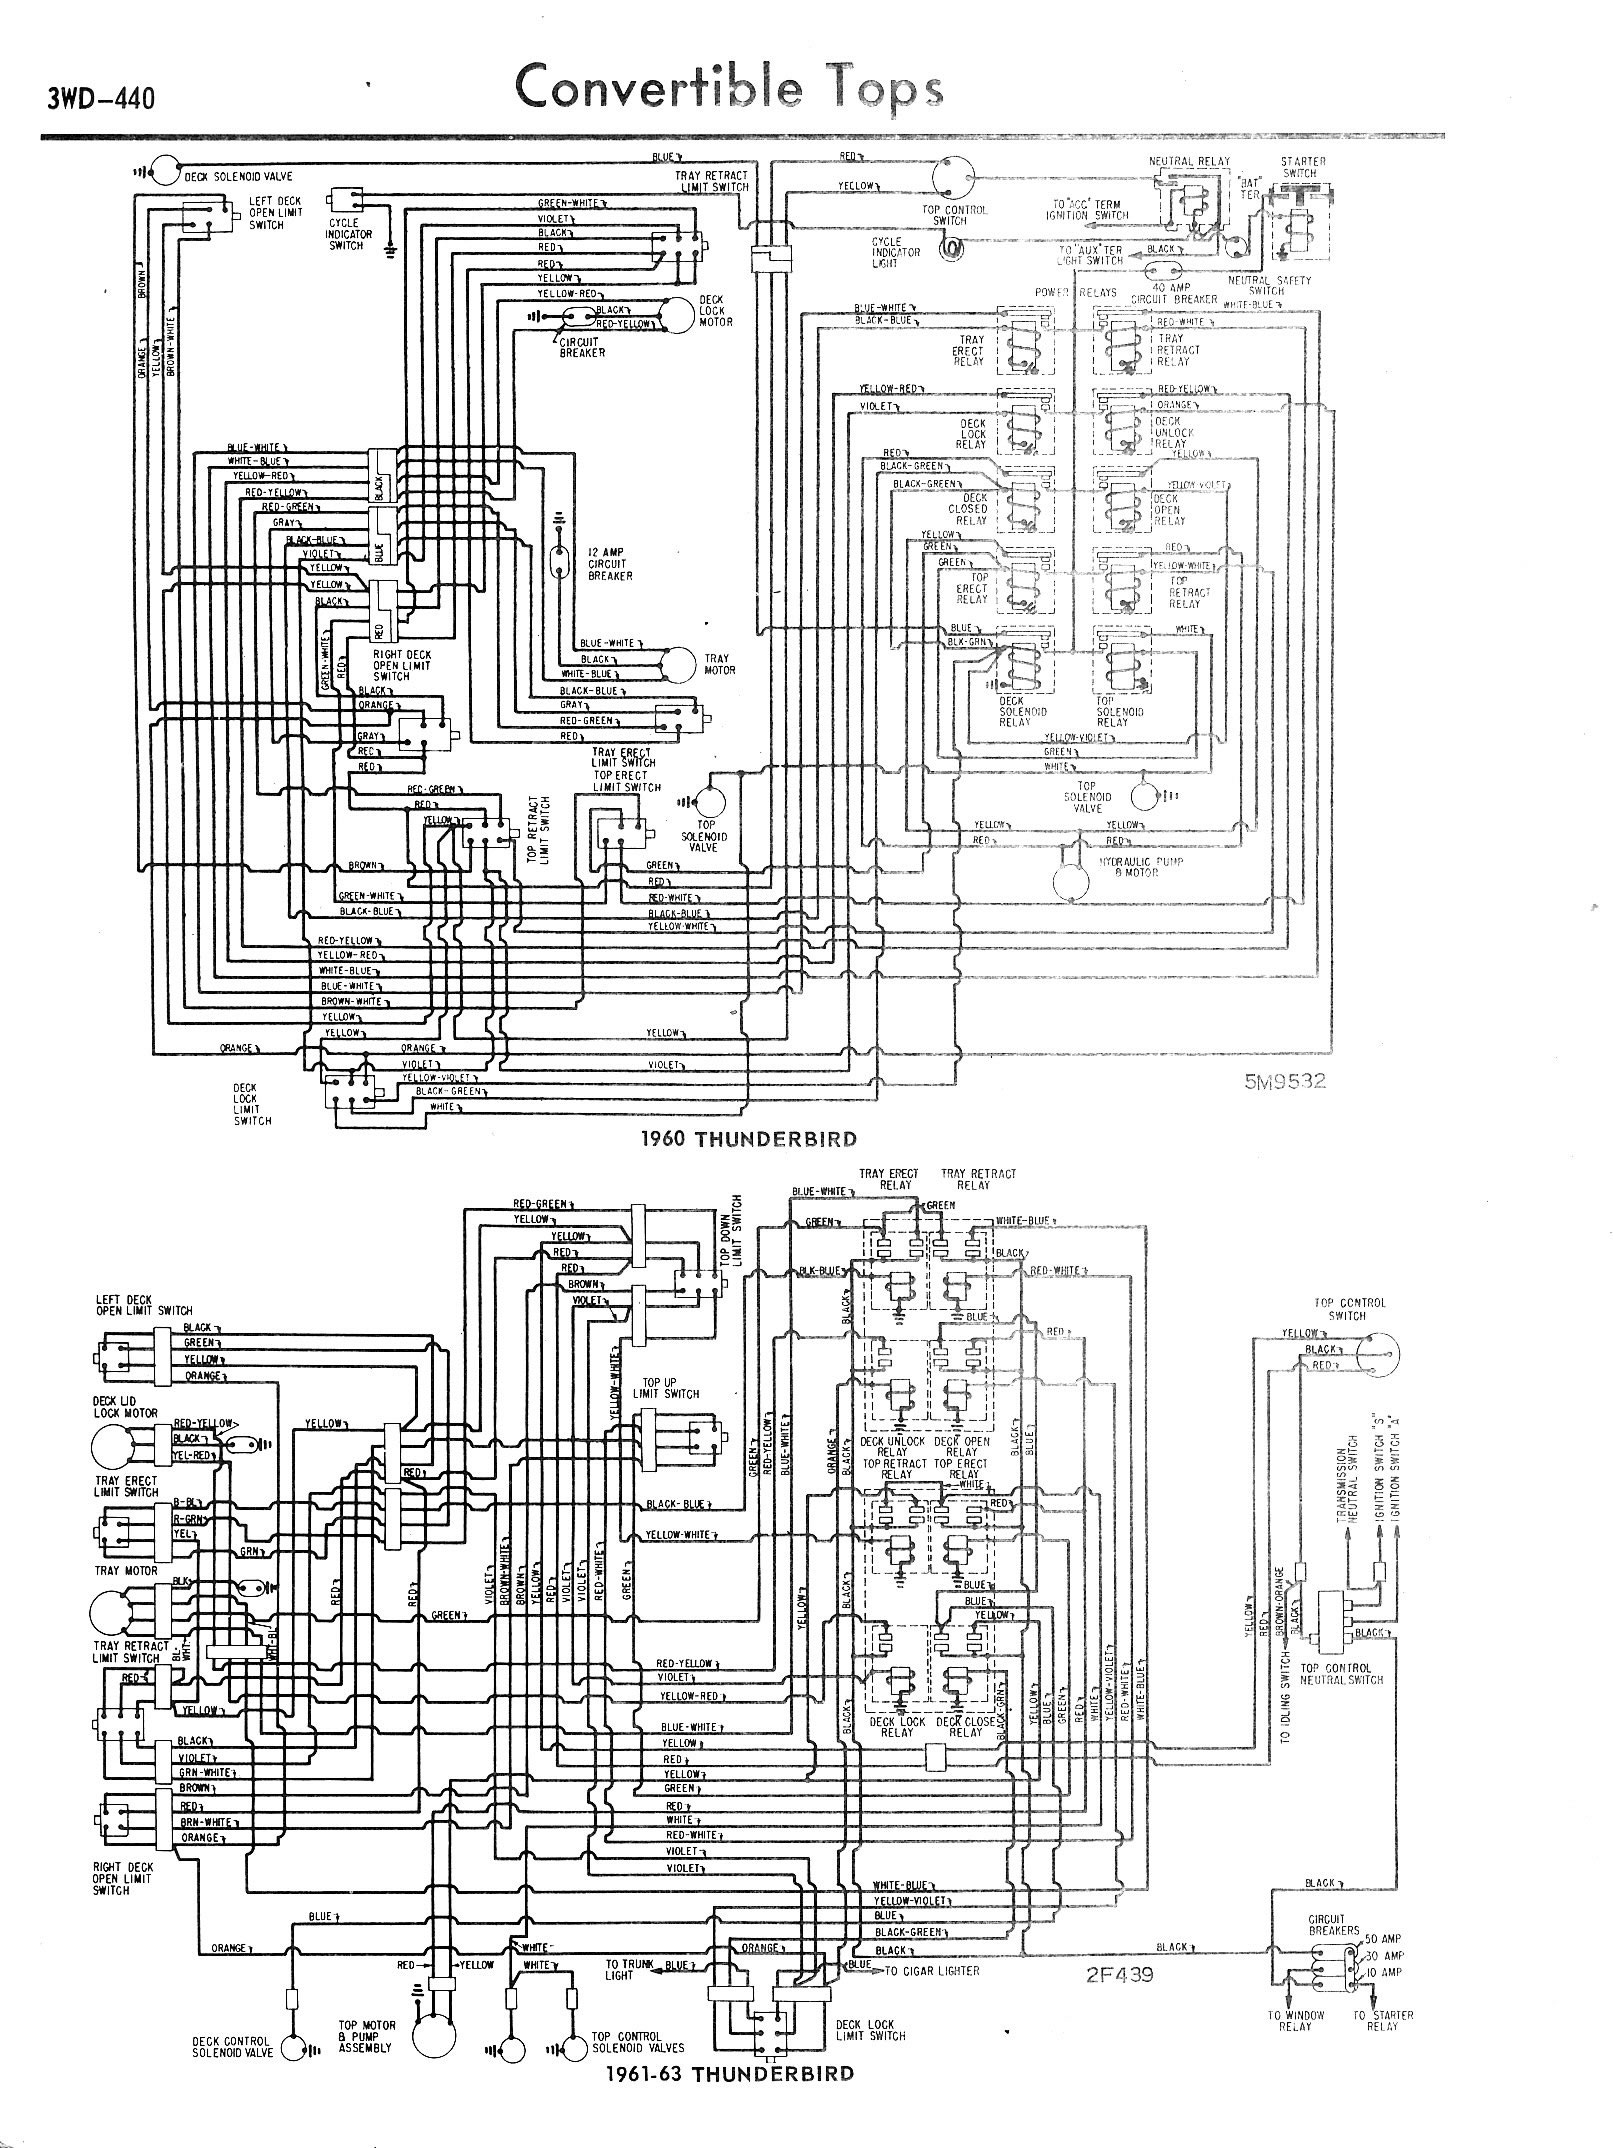 Ford Diagrams on 1957 vw wiring diagram, 1970 vw beetle wiring diagram, 1960 vw steering, 1960 vw headlights, 1960 vw fuel tank, 1960 vw engine, 67 vw wiring diagram, 1979 vw beetle wiring diagram, 1968 vw beetle wiring diagram, 1960 vw motor, 1973 vw wiring diagram, 1972 vw wiring diagram, 70 vw wiring diagram, 1969 vw wiring diagram,